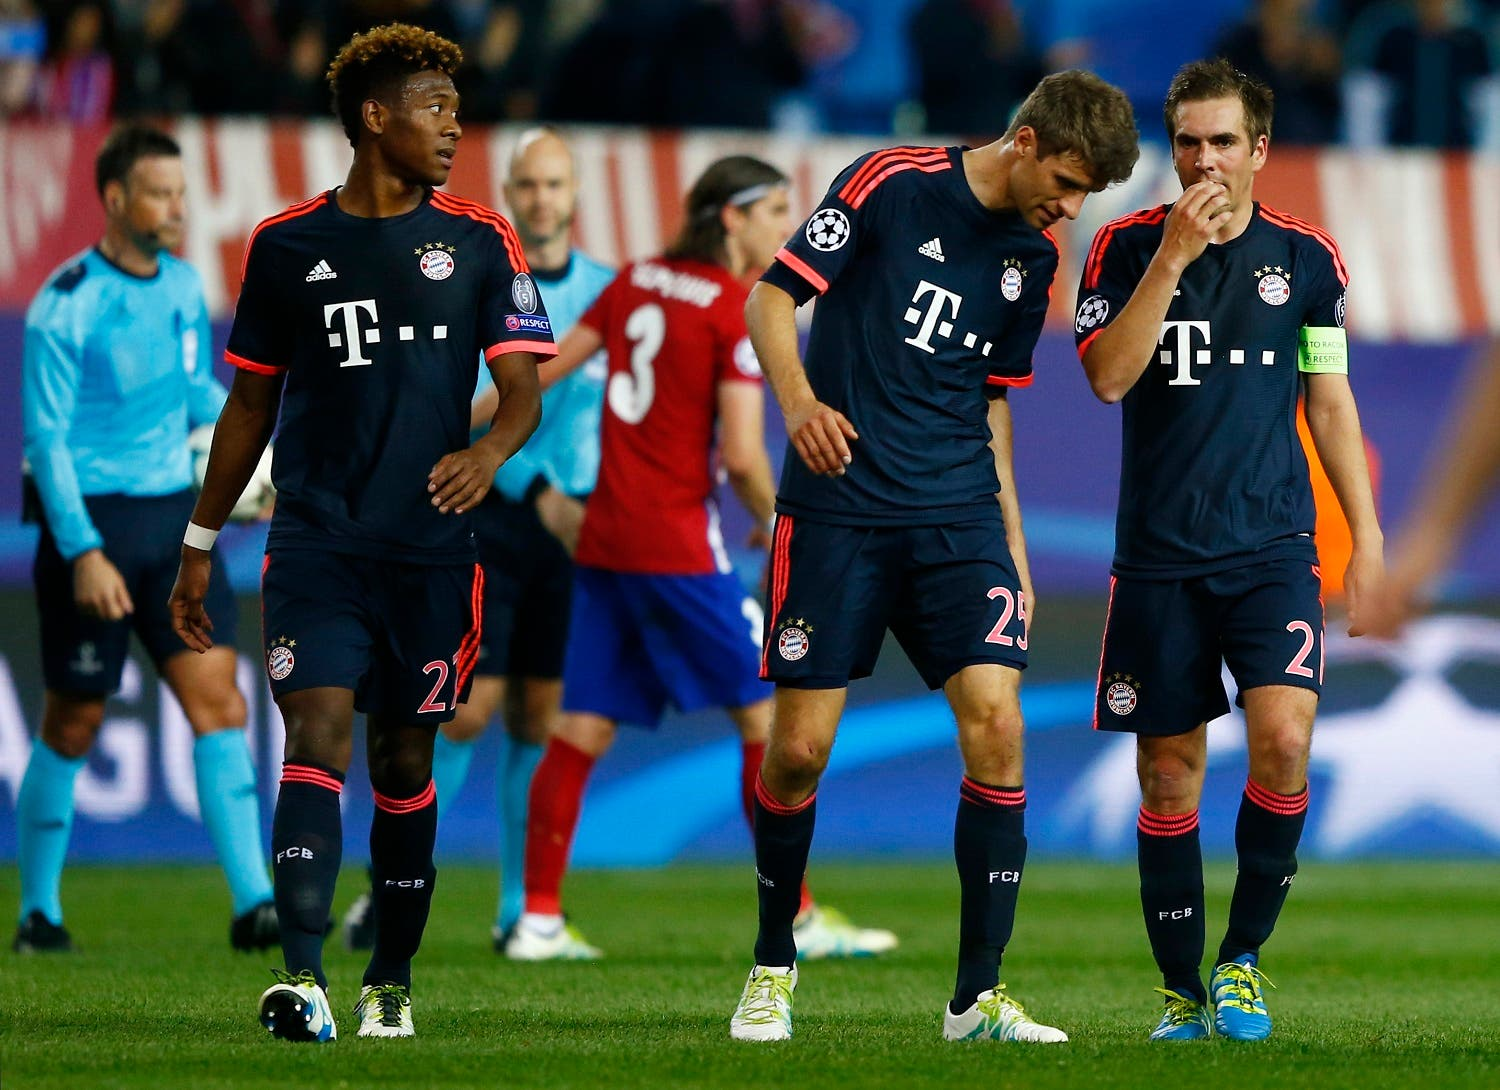 Bayern Munich's David Alaba, Thomas Muller and Philipp Lahm look dejected at the end of the match. (Reuters)